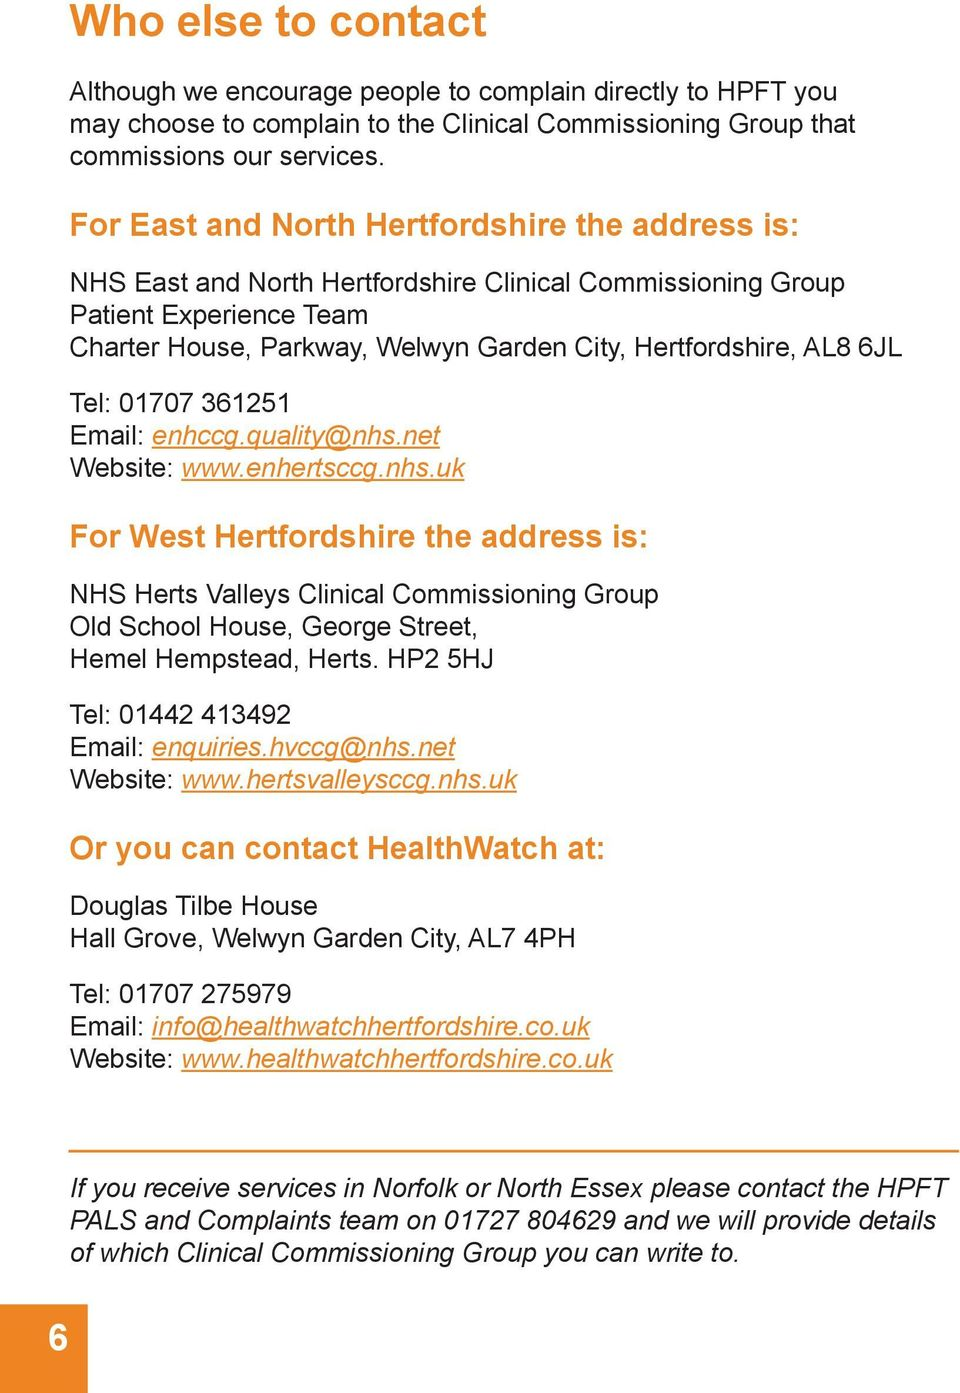 6JL Tel: 01707 361251 Email: enhccg.quality@nhs.net Website: www.enhertsccg.nhs.uk For West Hertfordshire the address is: NHS Herts Valleys Clinical Commissioning Group Old School House, George Street, Hemel Hempstead, Herts.